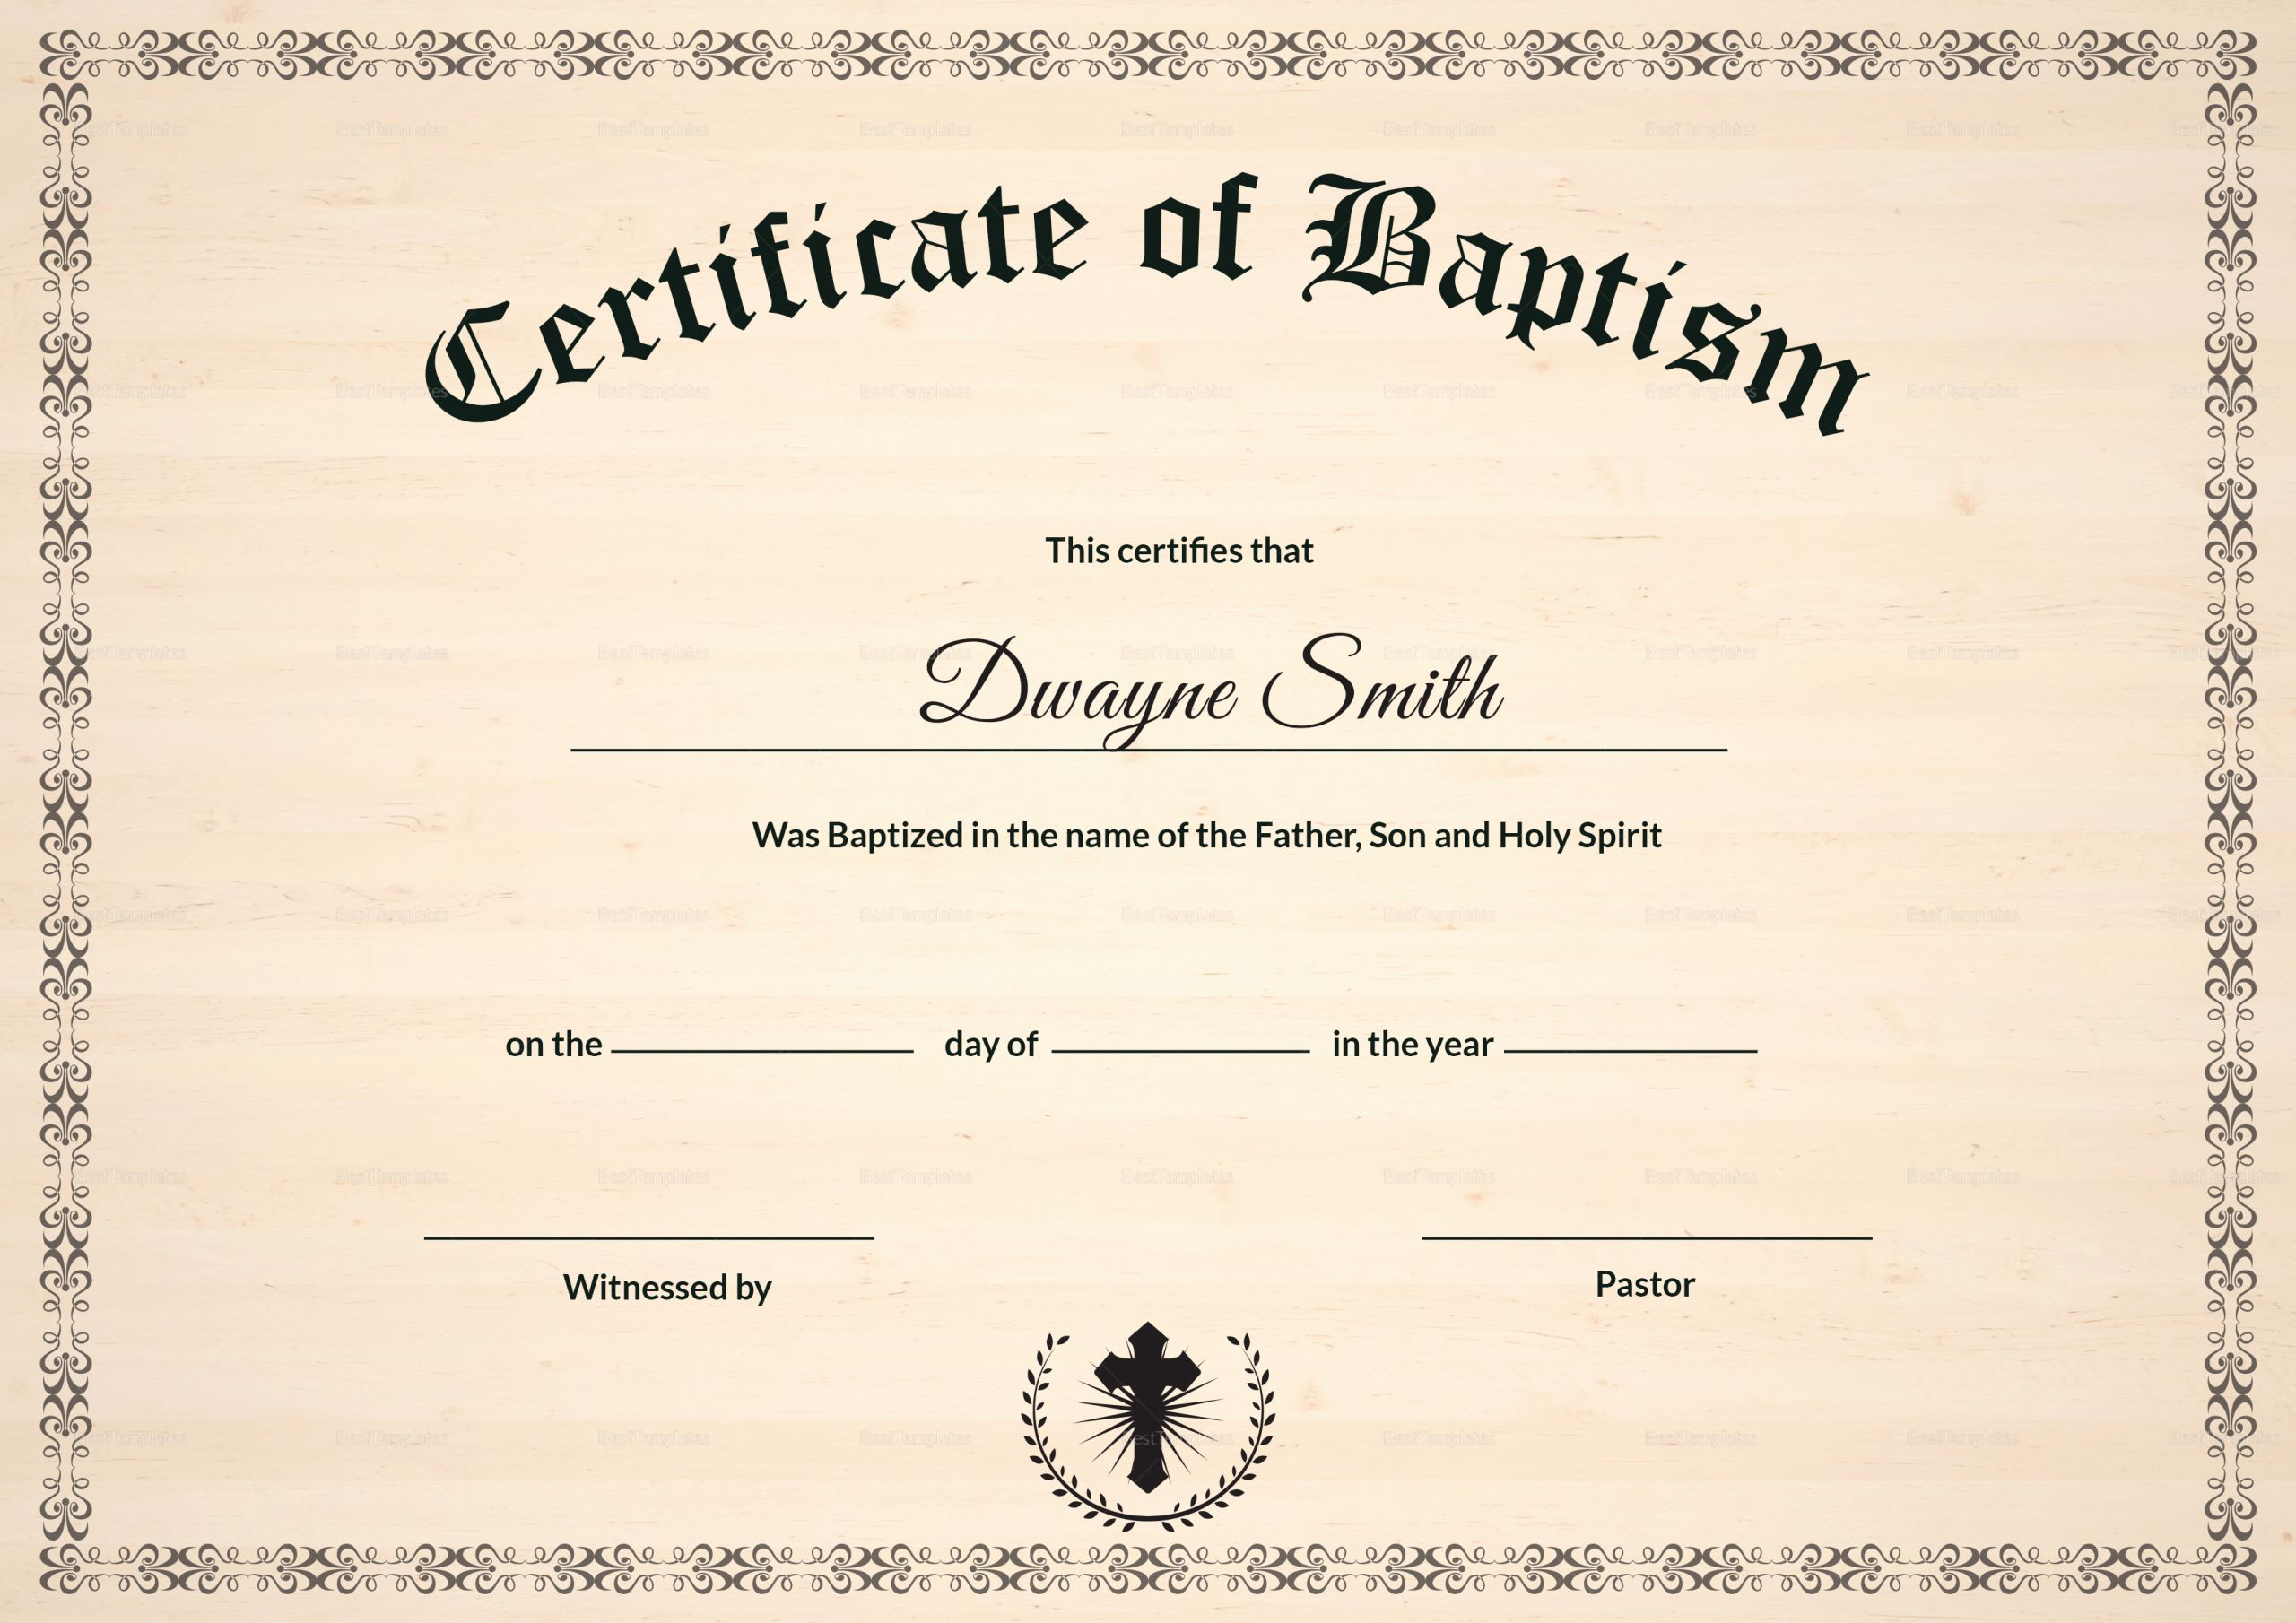 Baptism Certificate Template Word Awesome Baptism Certificate Design Template In Psd Word